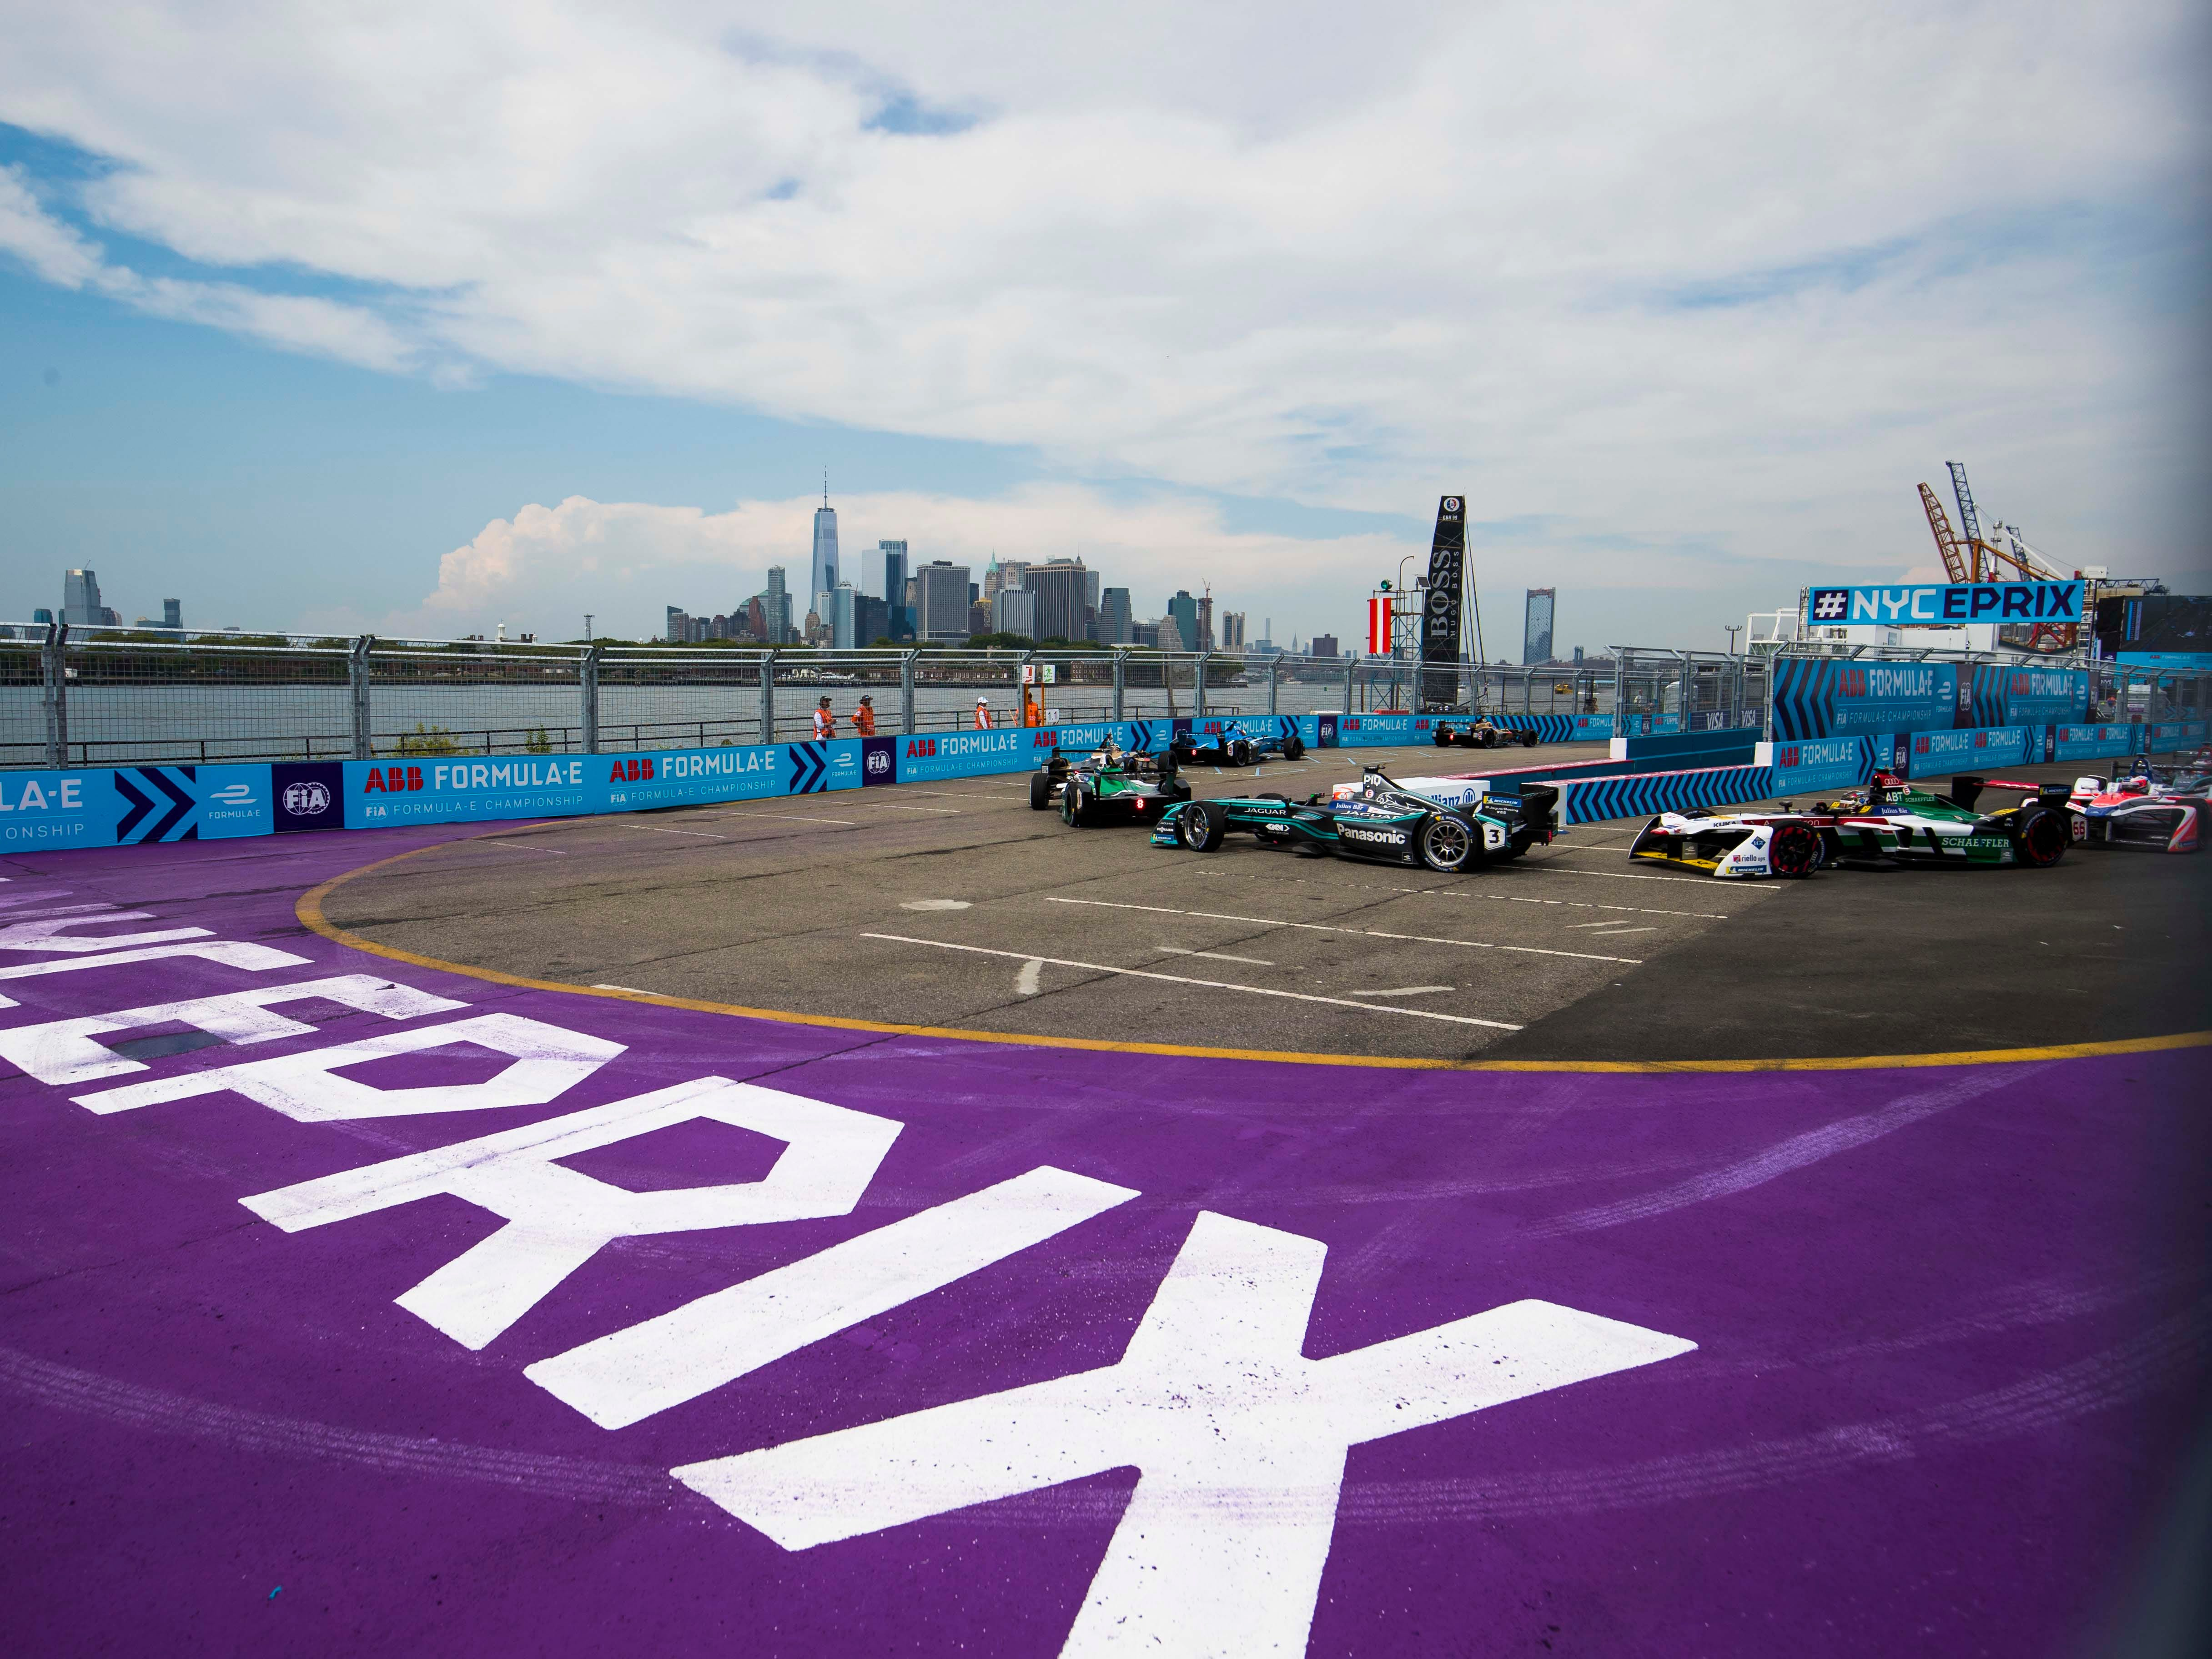 Formula E races in some of the world's biggest cities, including New York, Hong Kong, Paris and Mexico City.